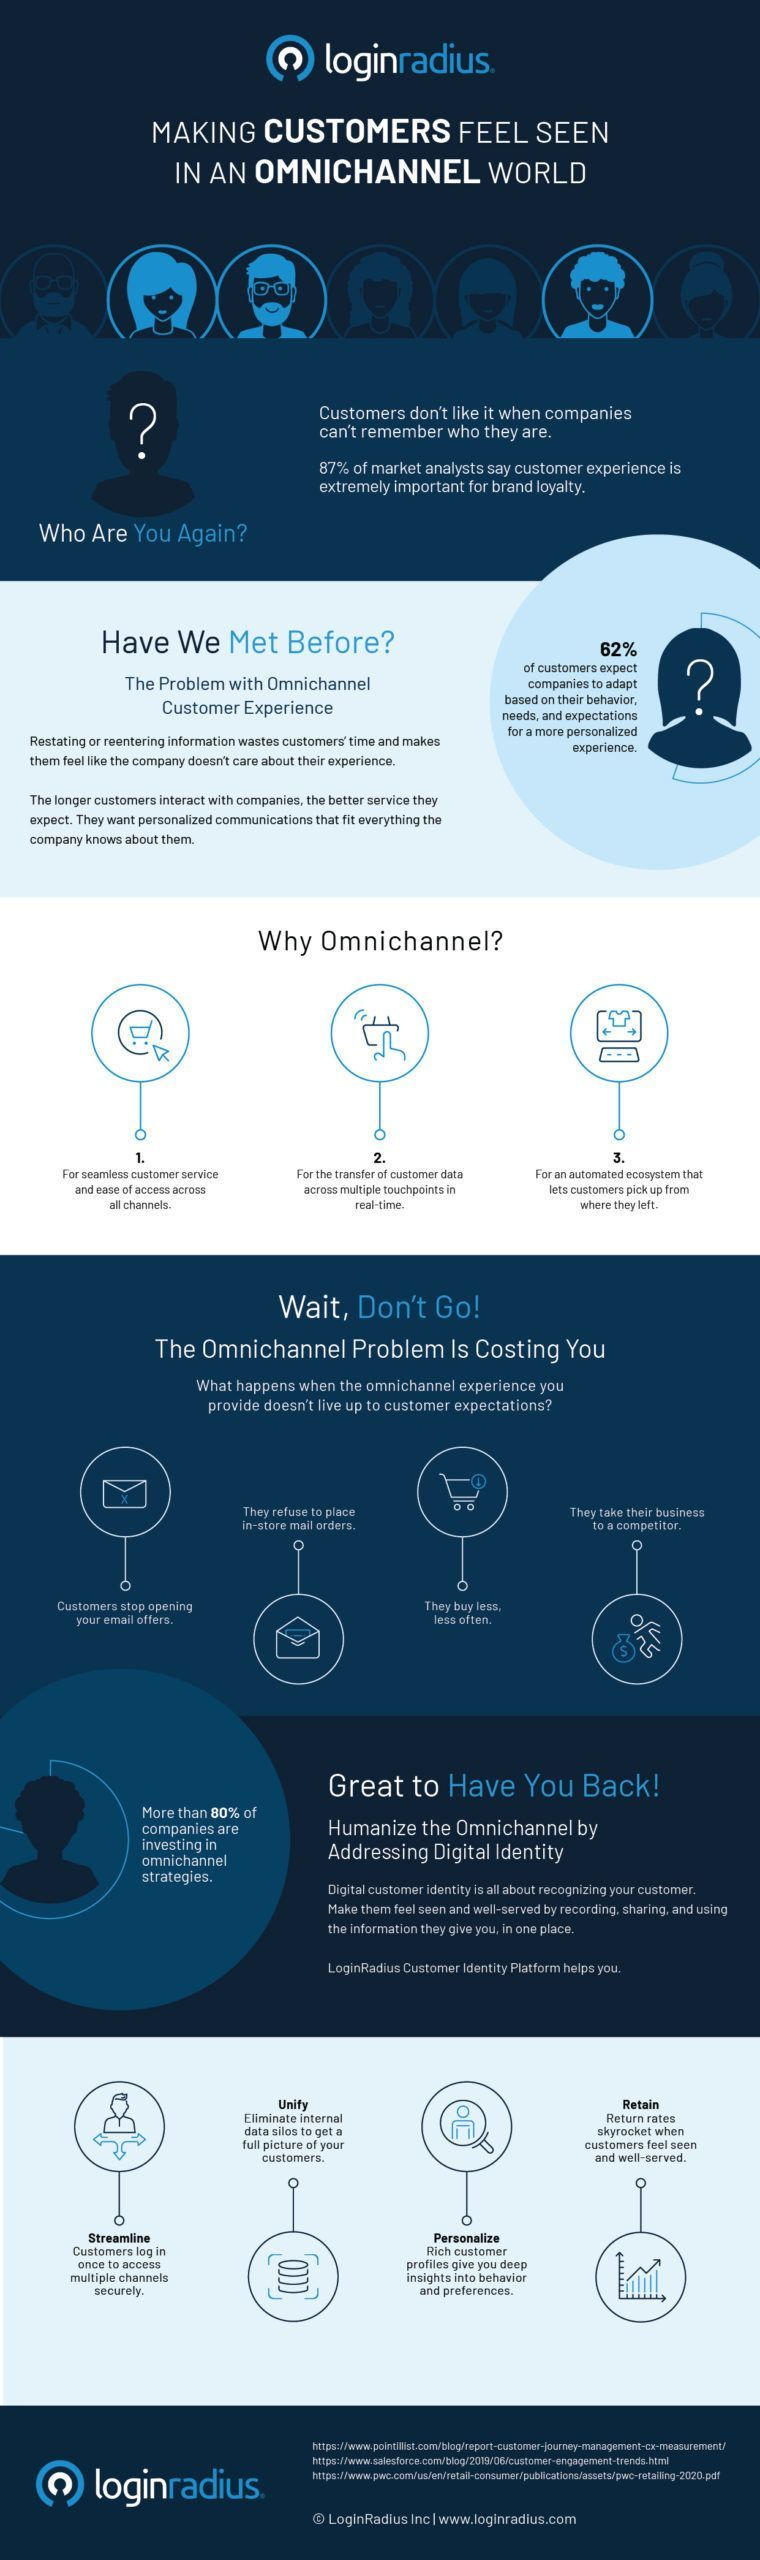 How To Enhance Customers' Omnichannel Experience